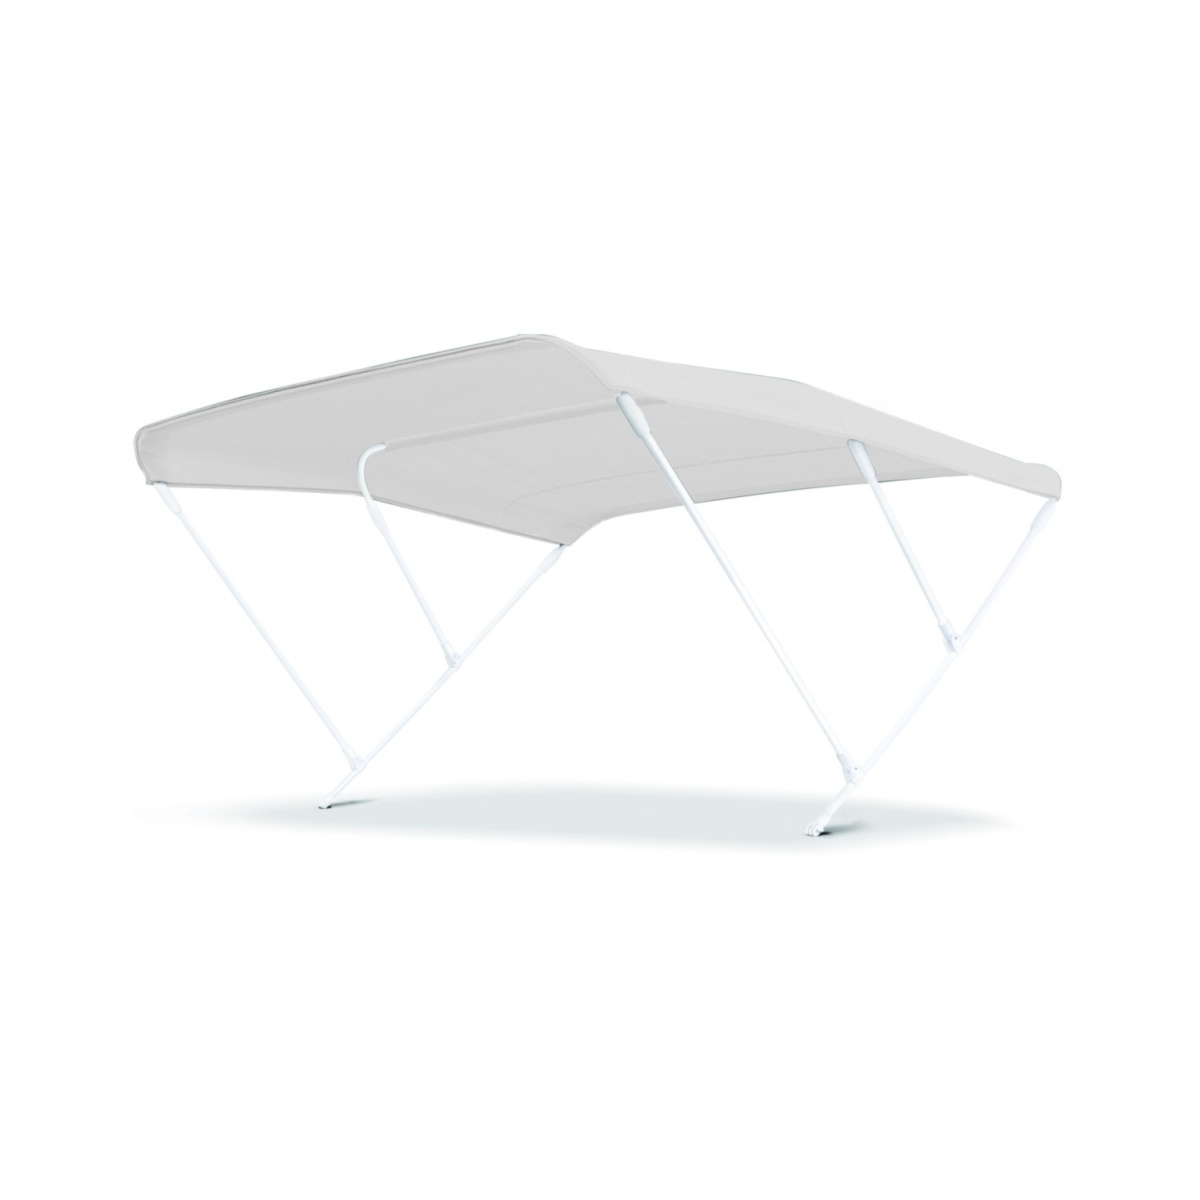 ALUMINIUM BIMINI TOP, 3 ARCHES